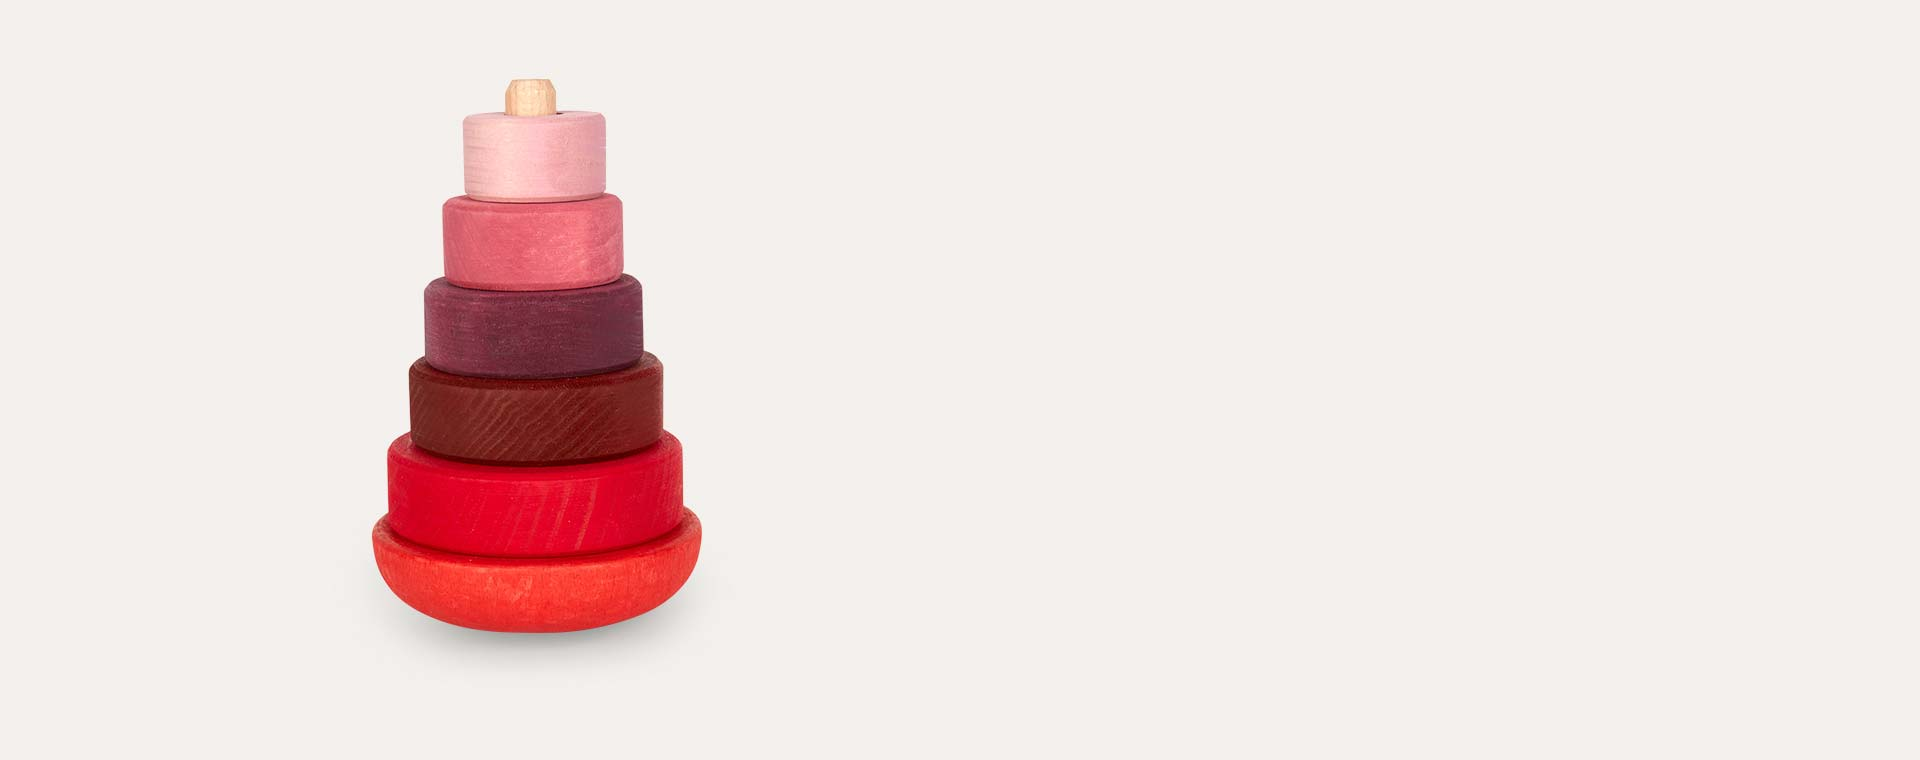 Pink/Red Grimm's Wobbly Stacking Tower